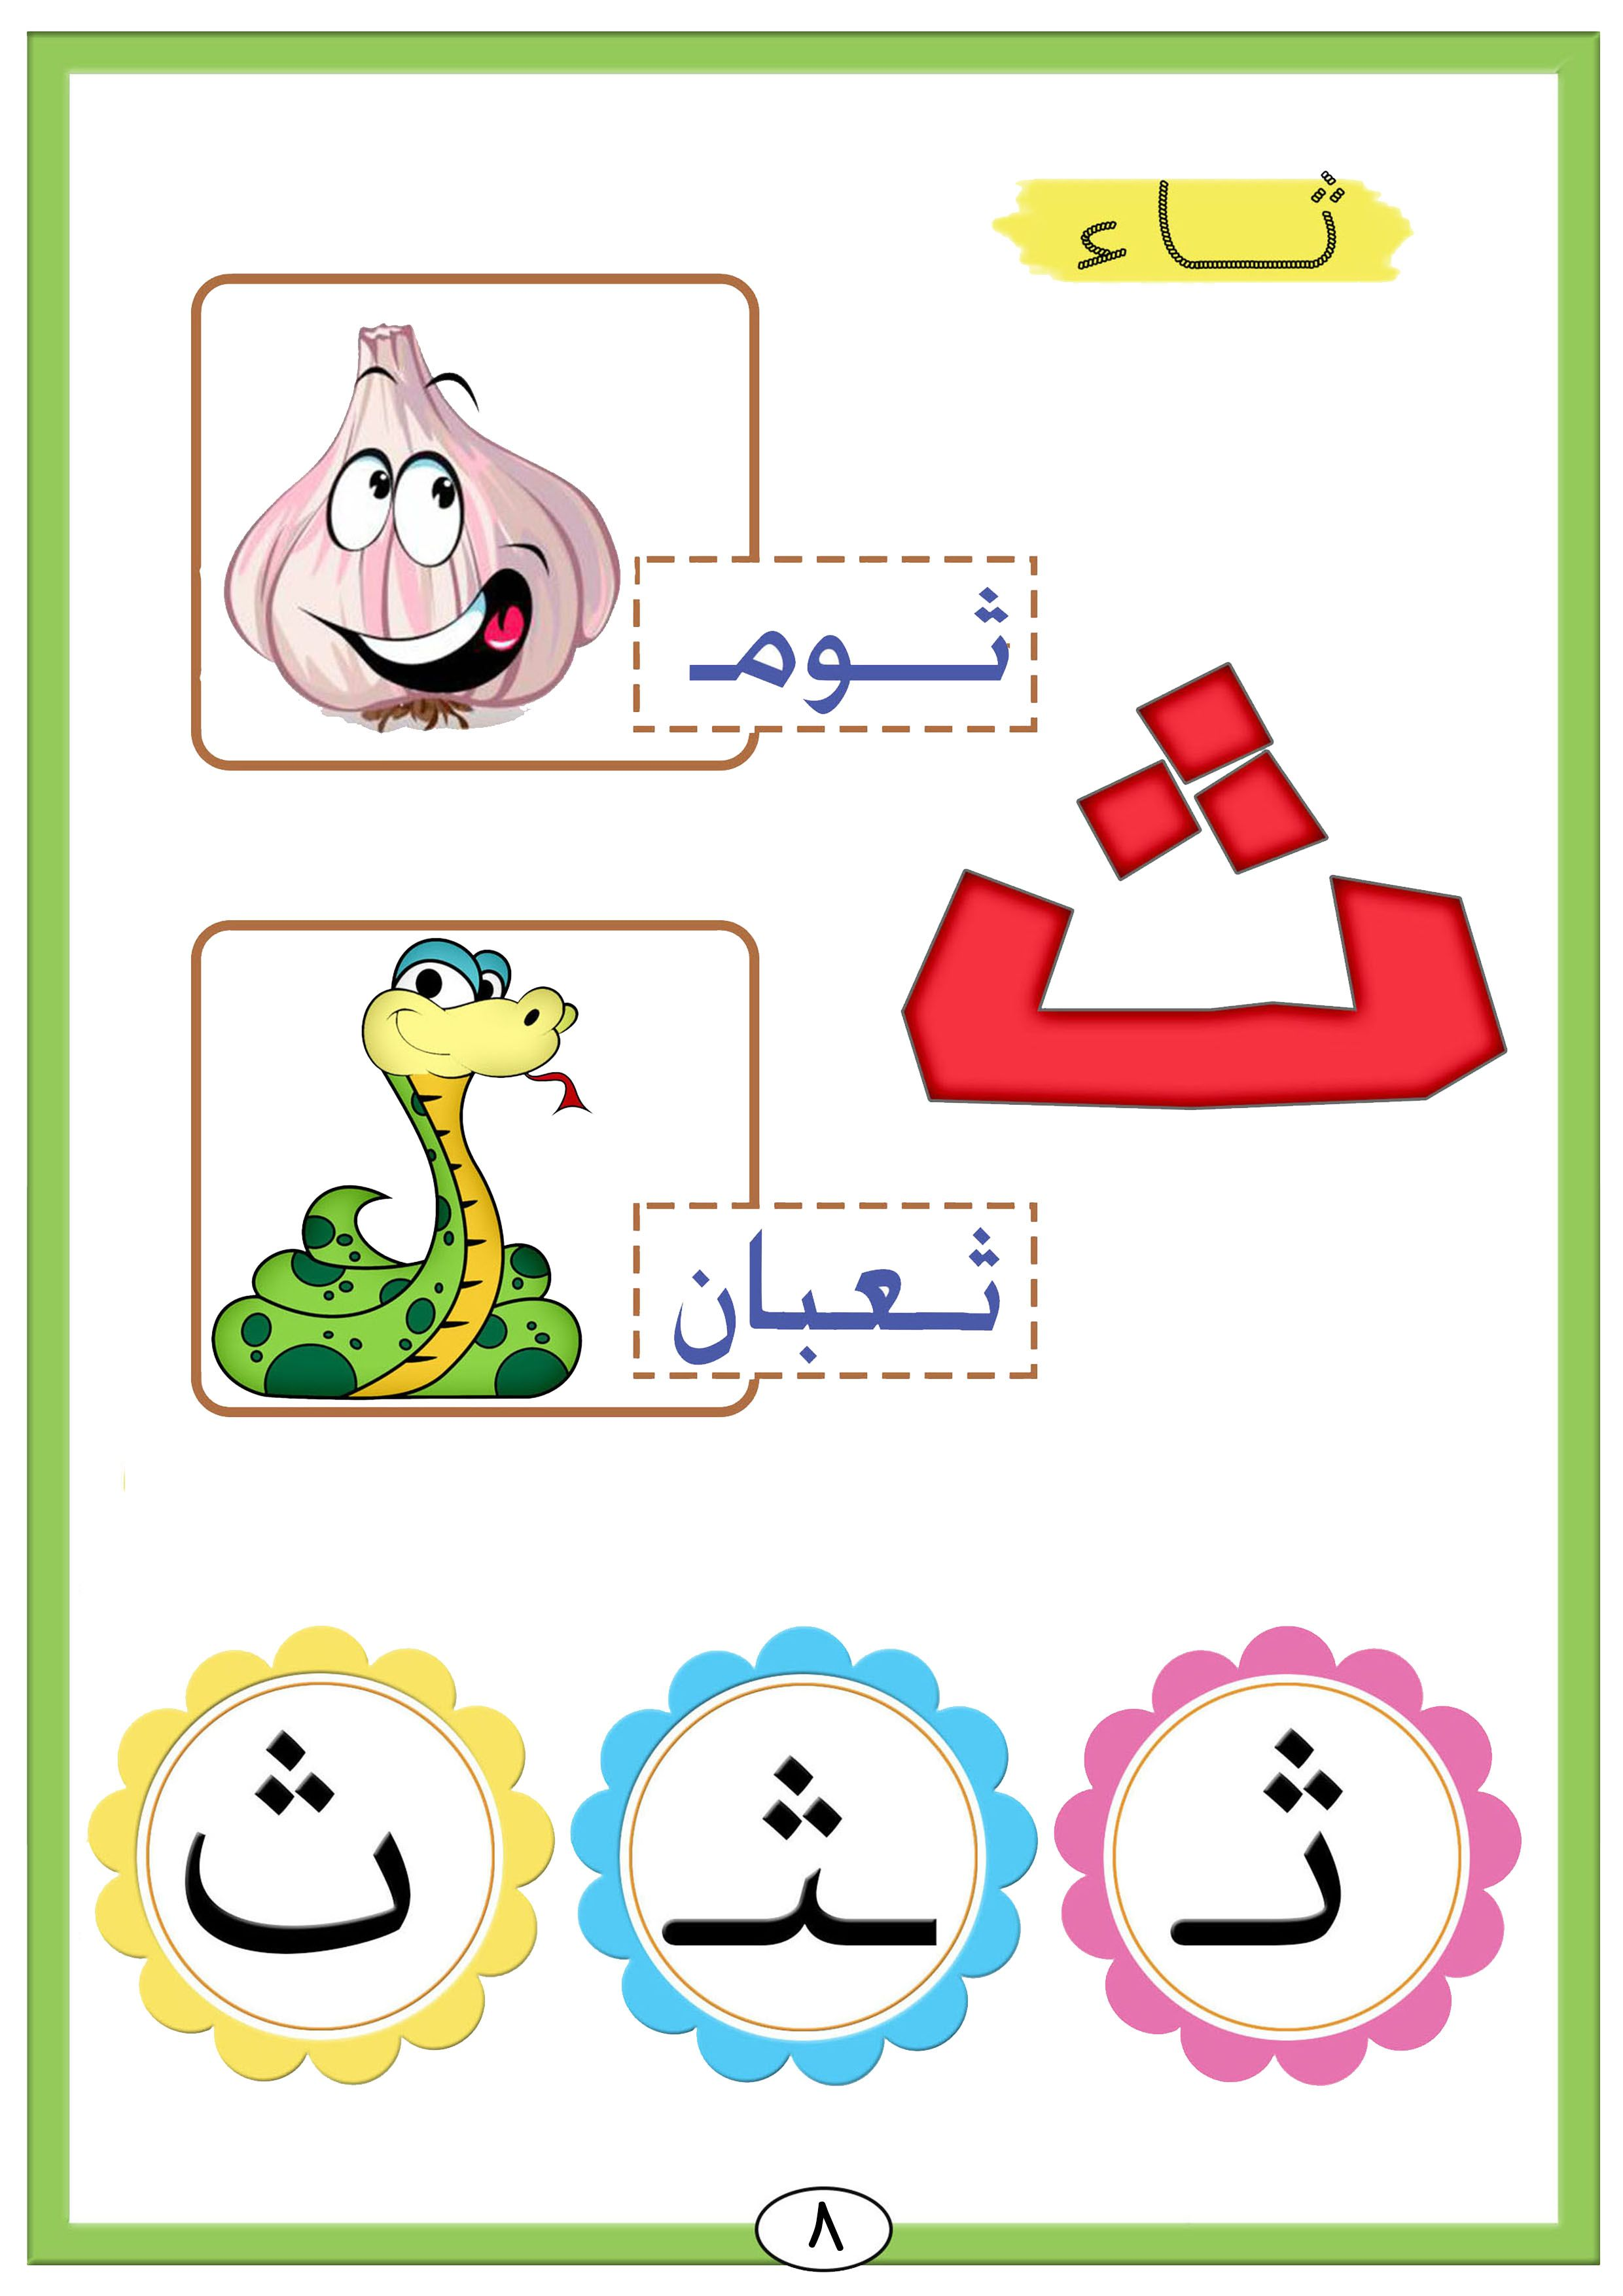 pin by elyamama on learn arabic alphabet arabic lessons learning arabic. Black Bedroom Furniture Sets. Home Design Ideas